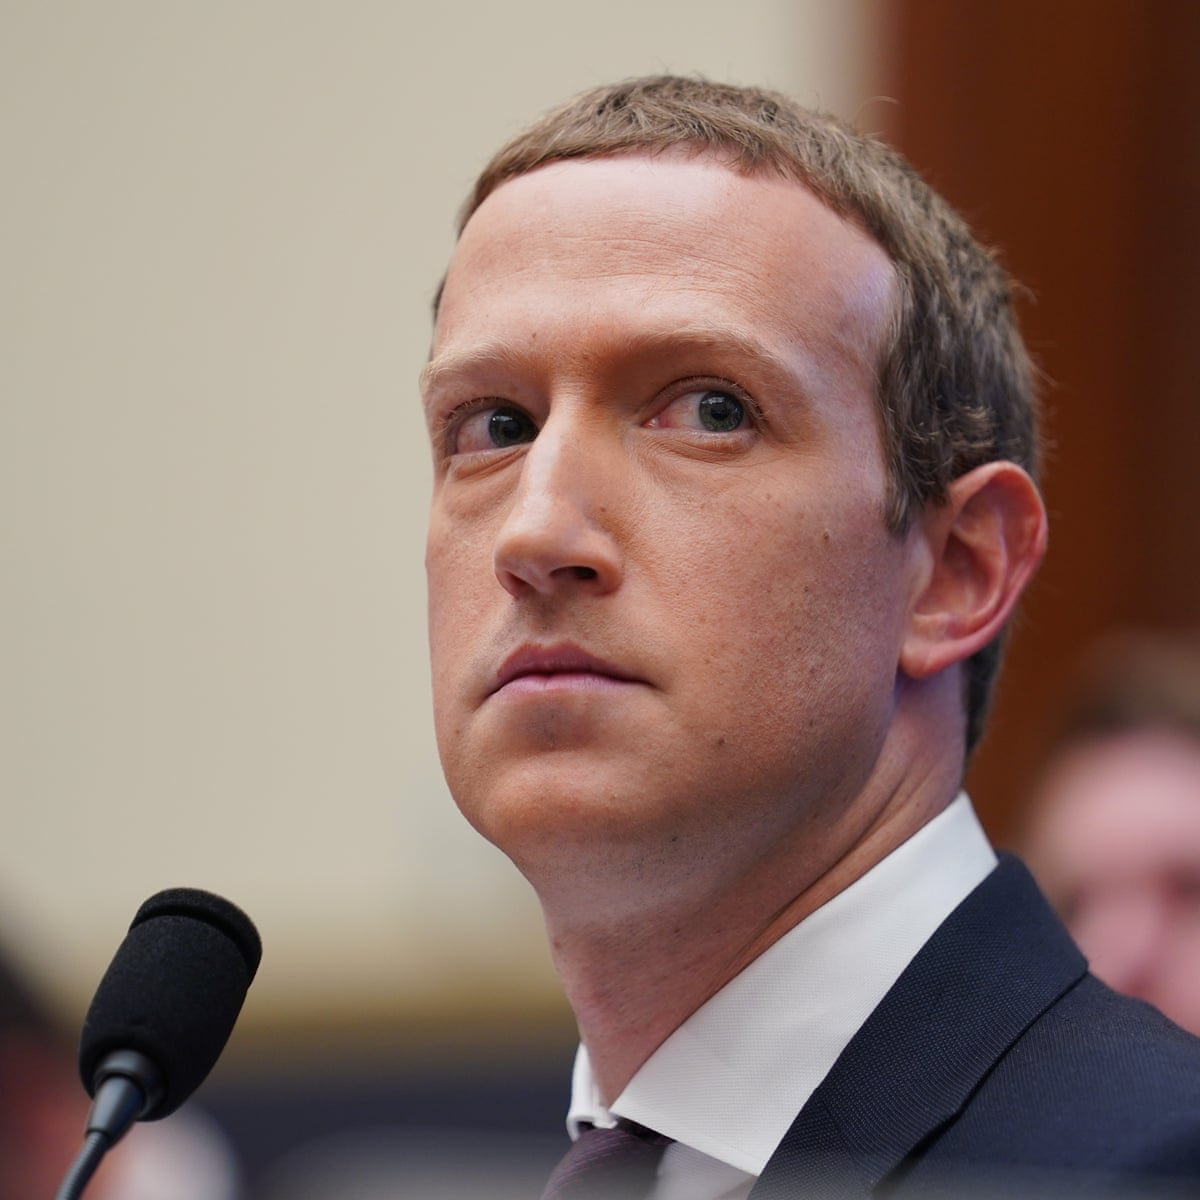 Mark Zuckerberg looks like if Kevin Spacey were trying to escape from Stephen Miller.